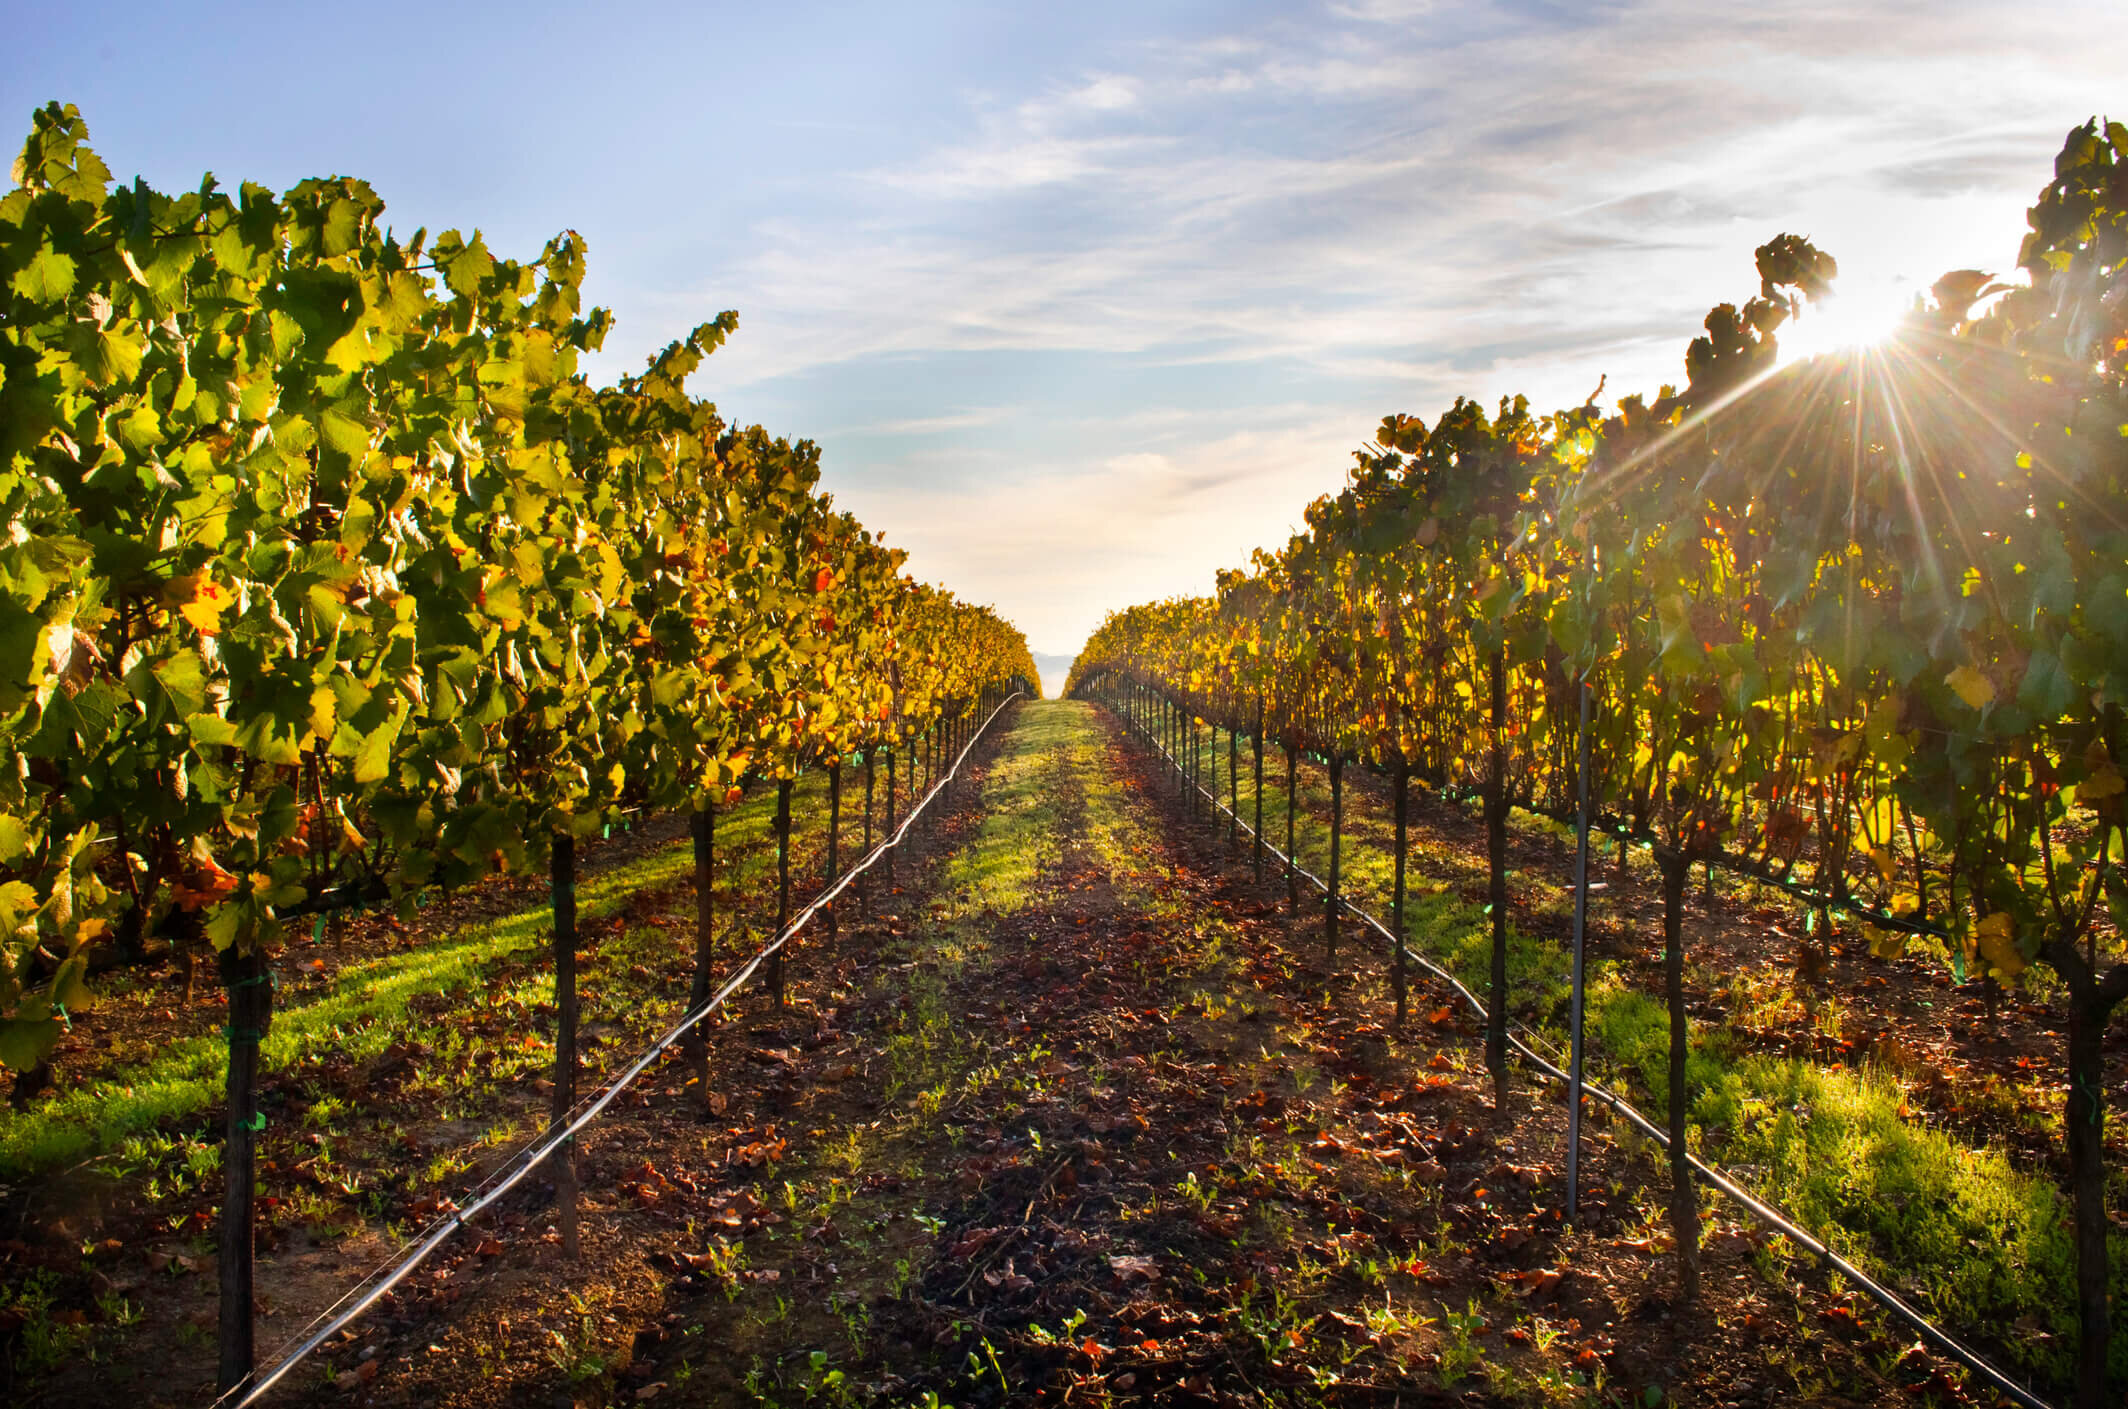 Napa Valley vineyards are an enchanting place to paint.